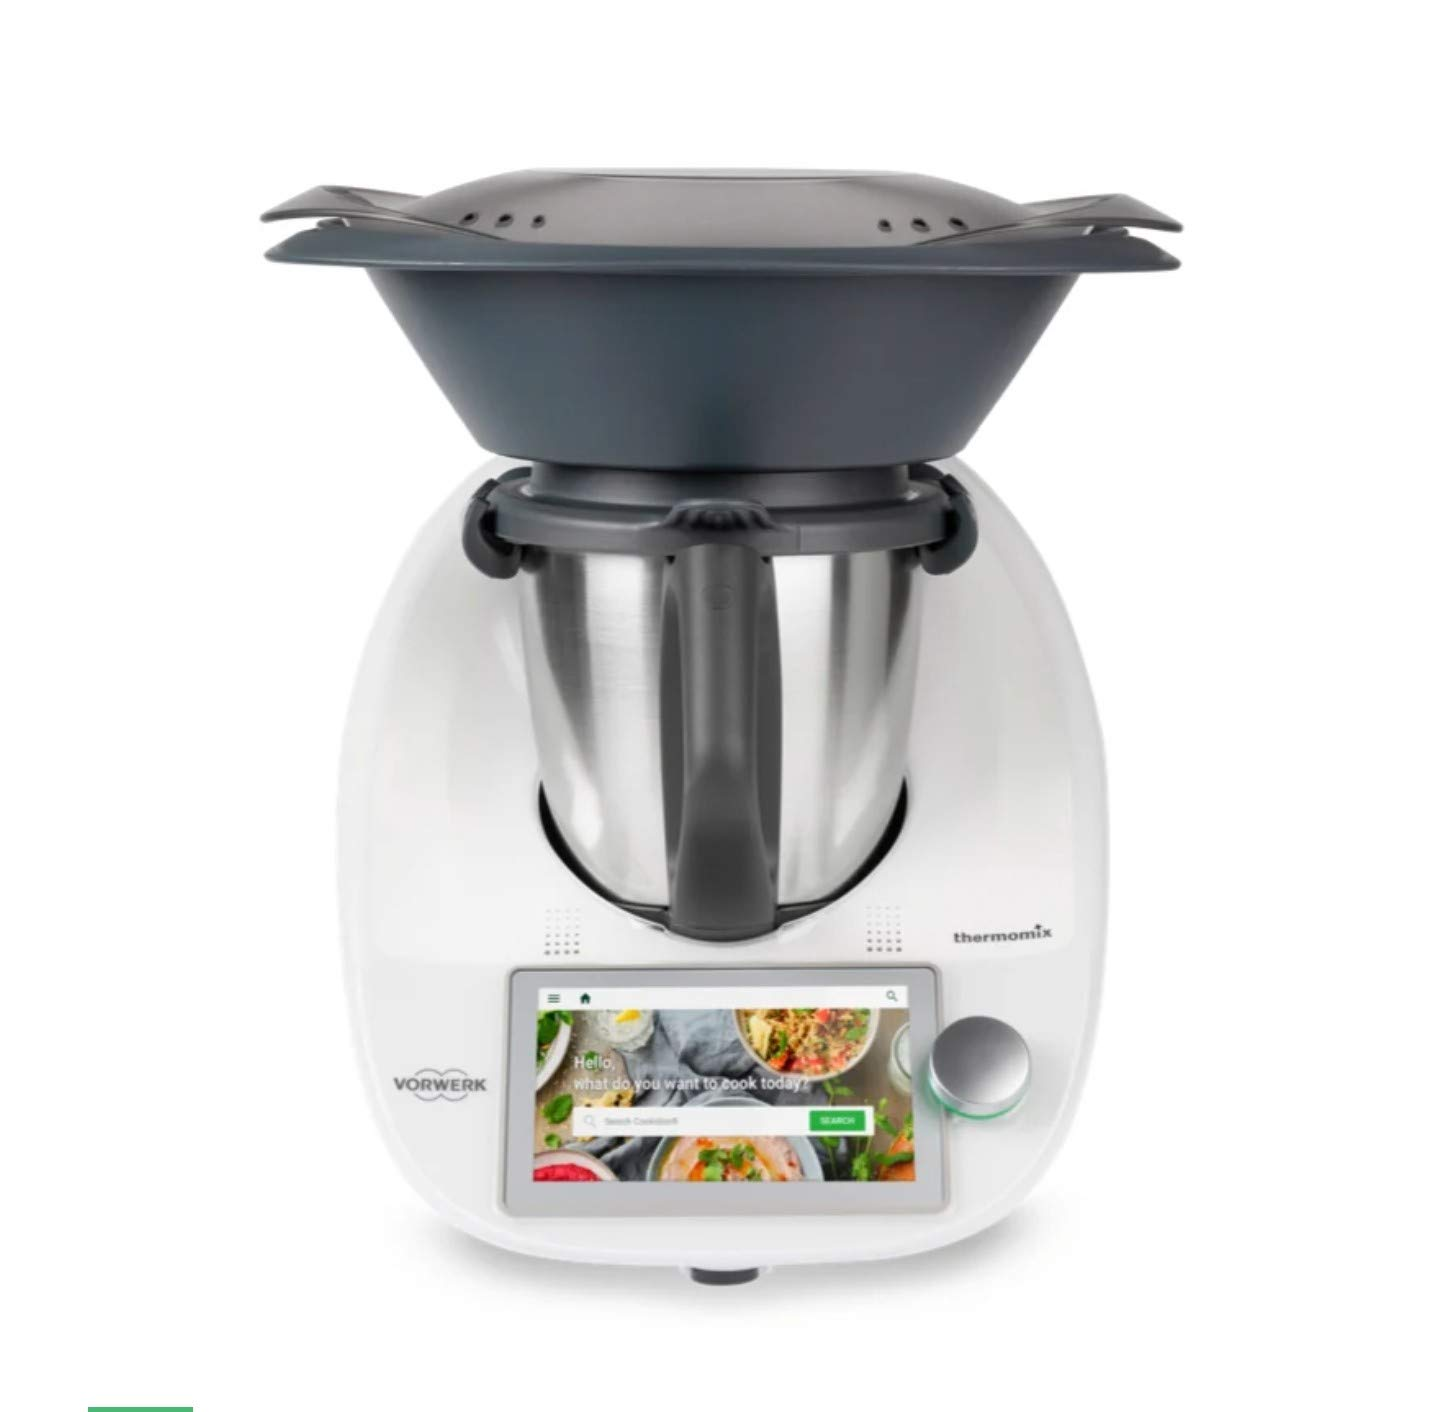 Thermomix TM20  Buy Online in Indonesia at Desertcart   4202426209.